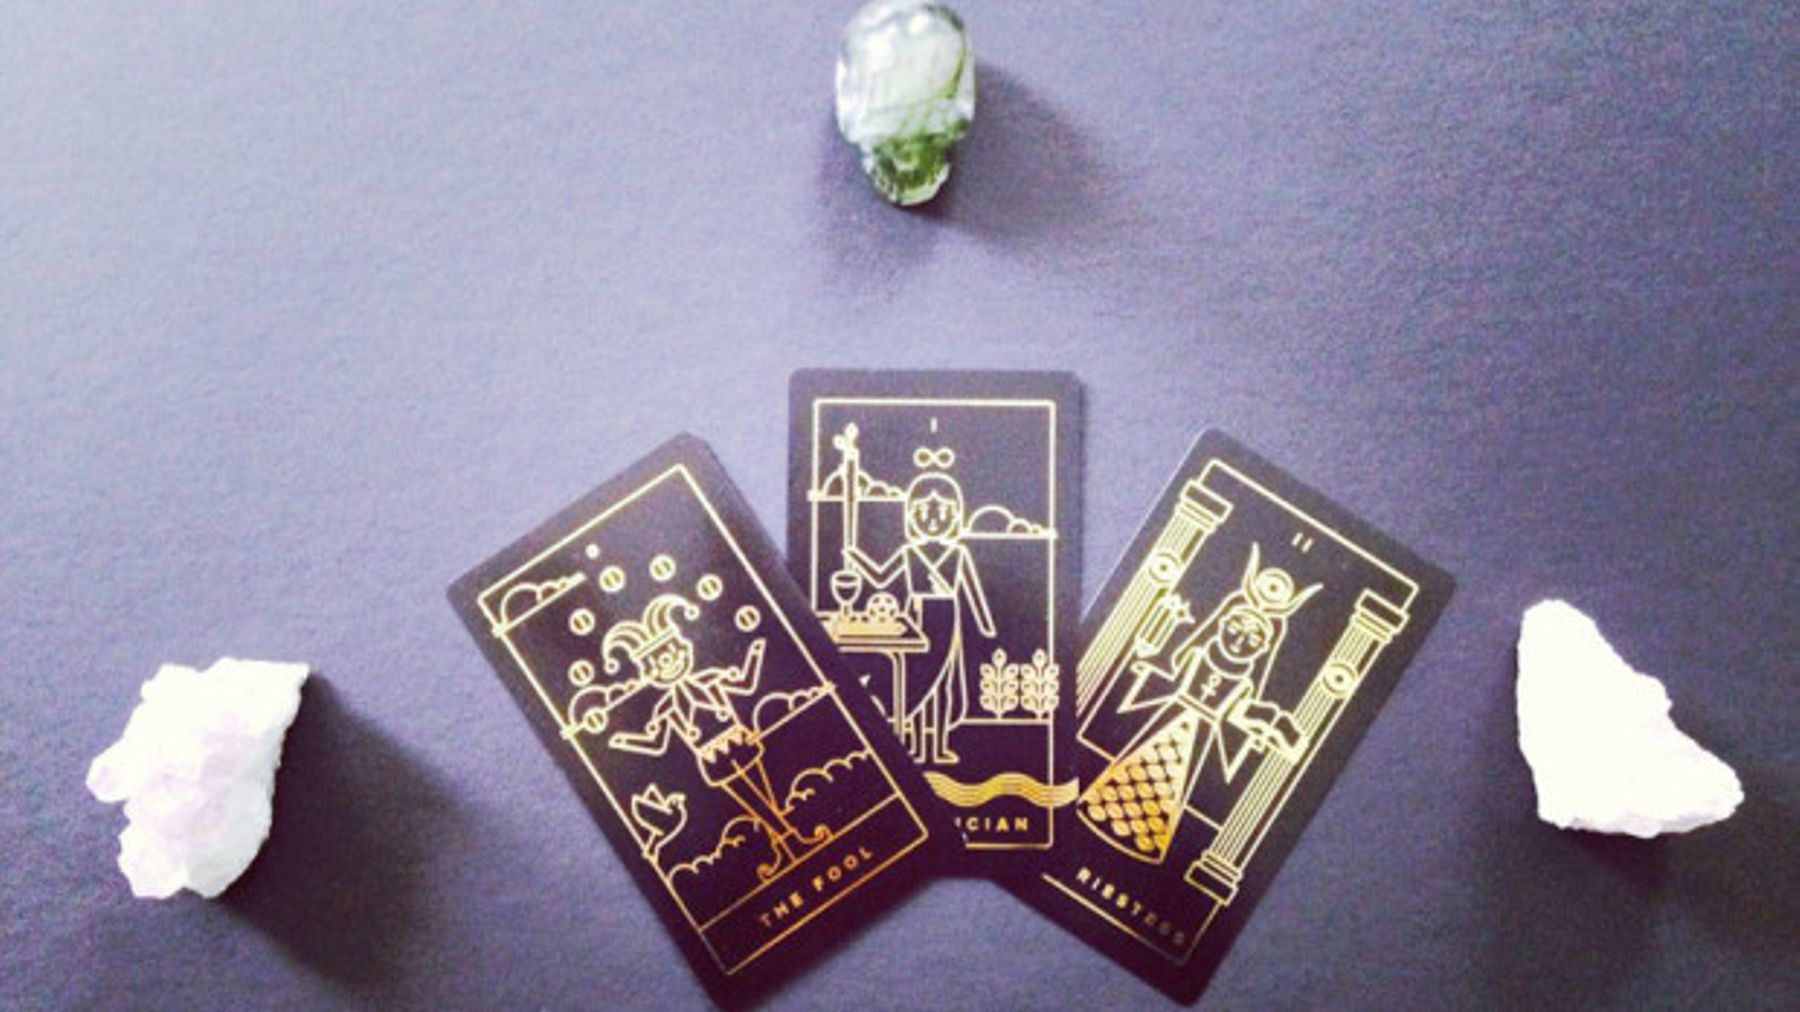 Wanna Learn How To Read Tarot Cards? There's An App For That | Grazia